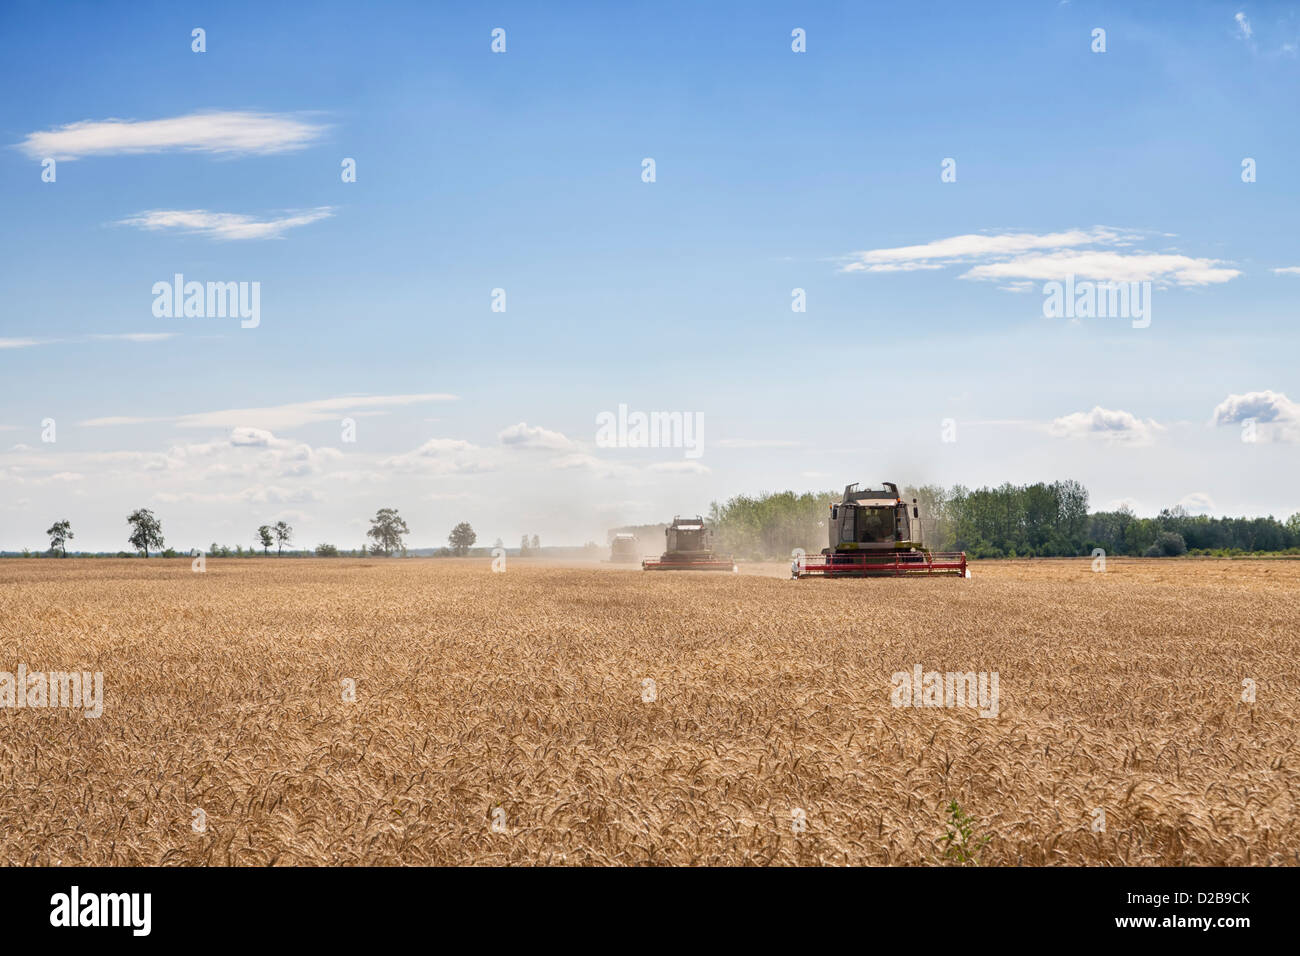 Three combined harvesters collecting from a wheat or barley field - Stock Image